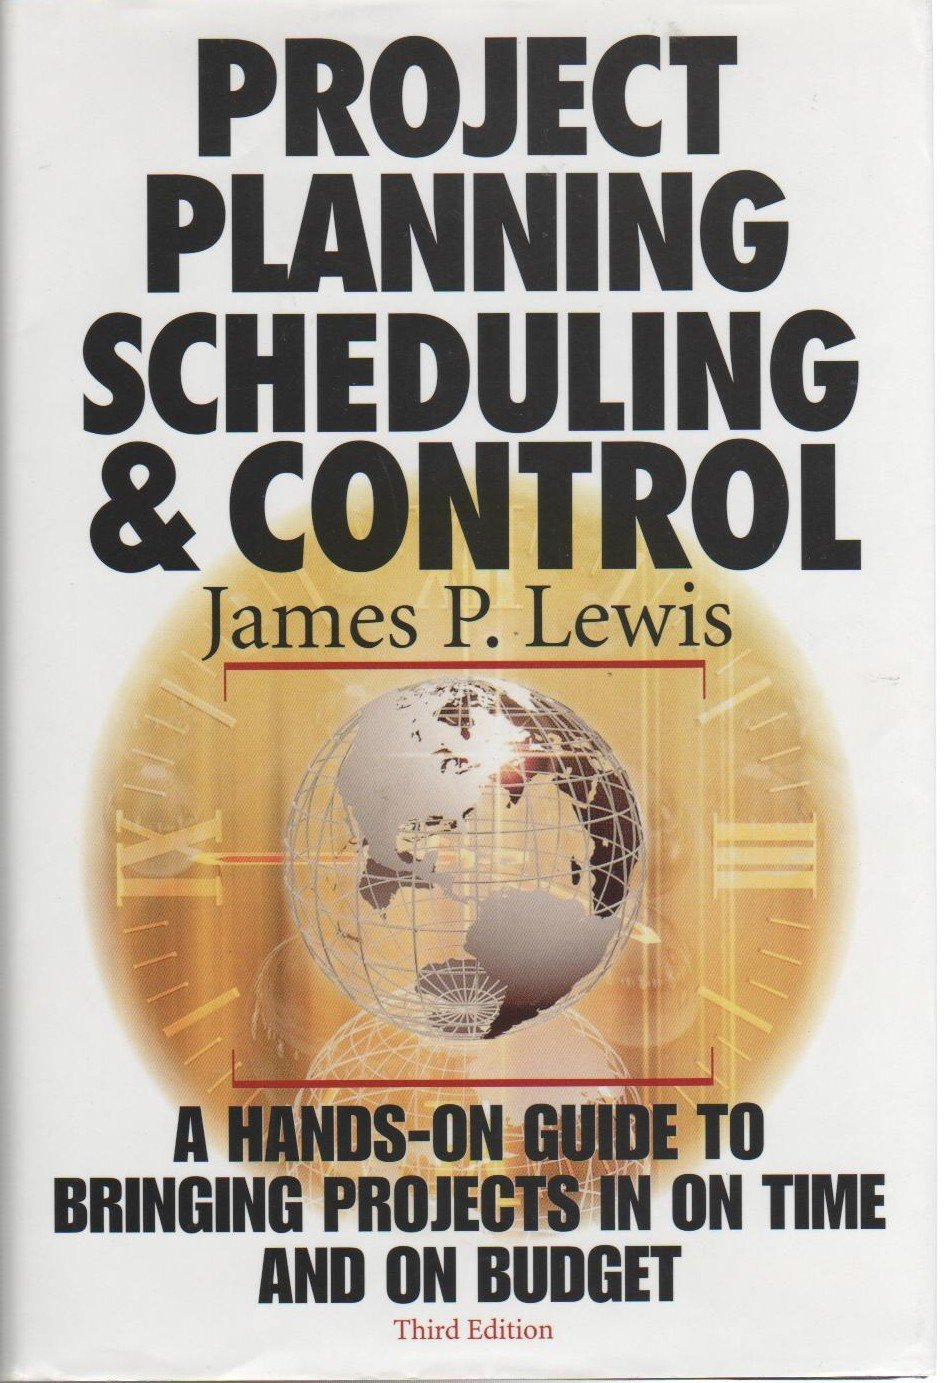 Project Planning, Scheduling, & Control by J P Lewis (2001)